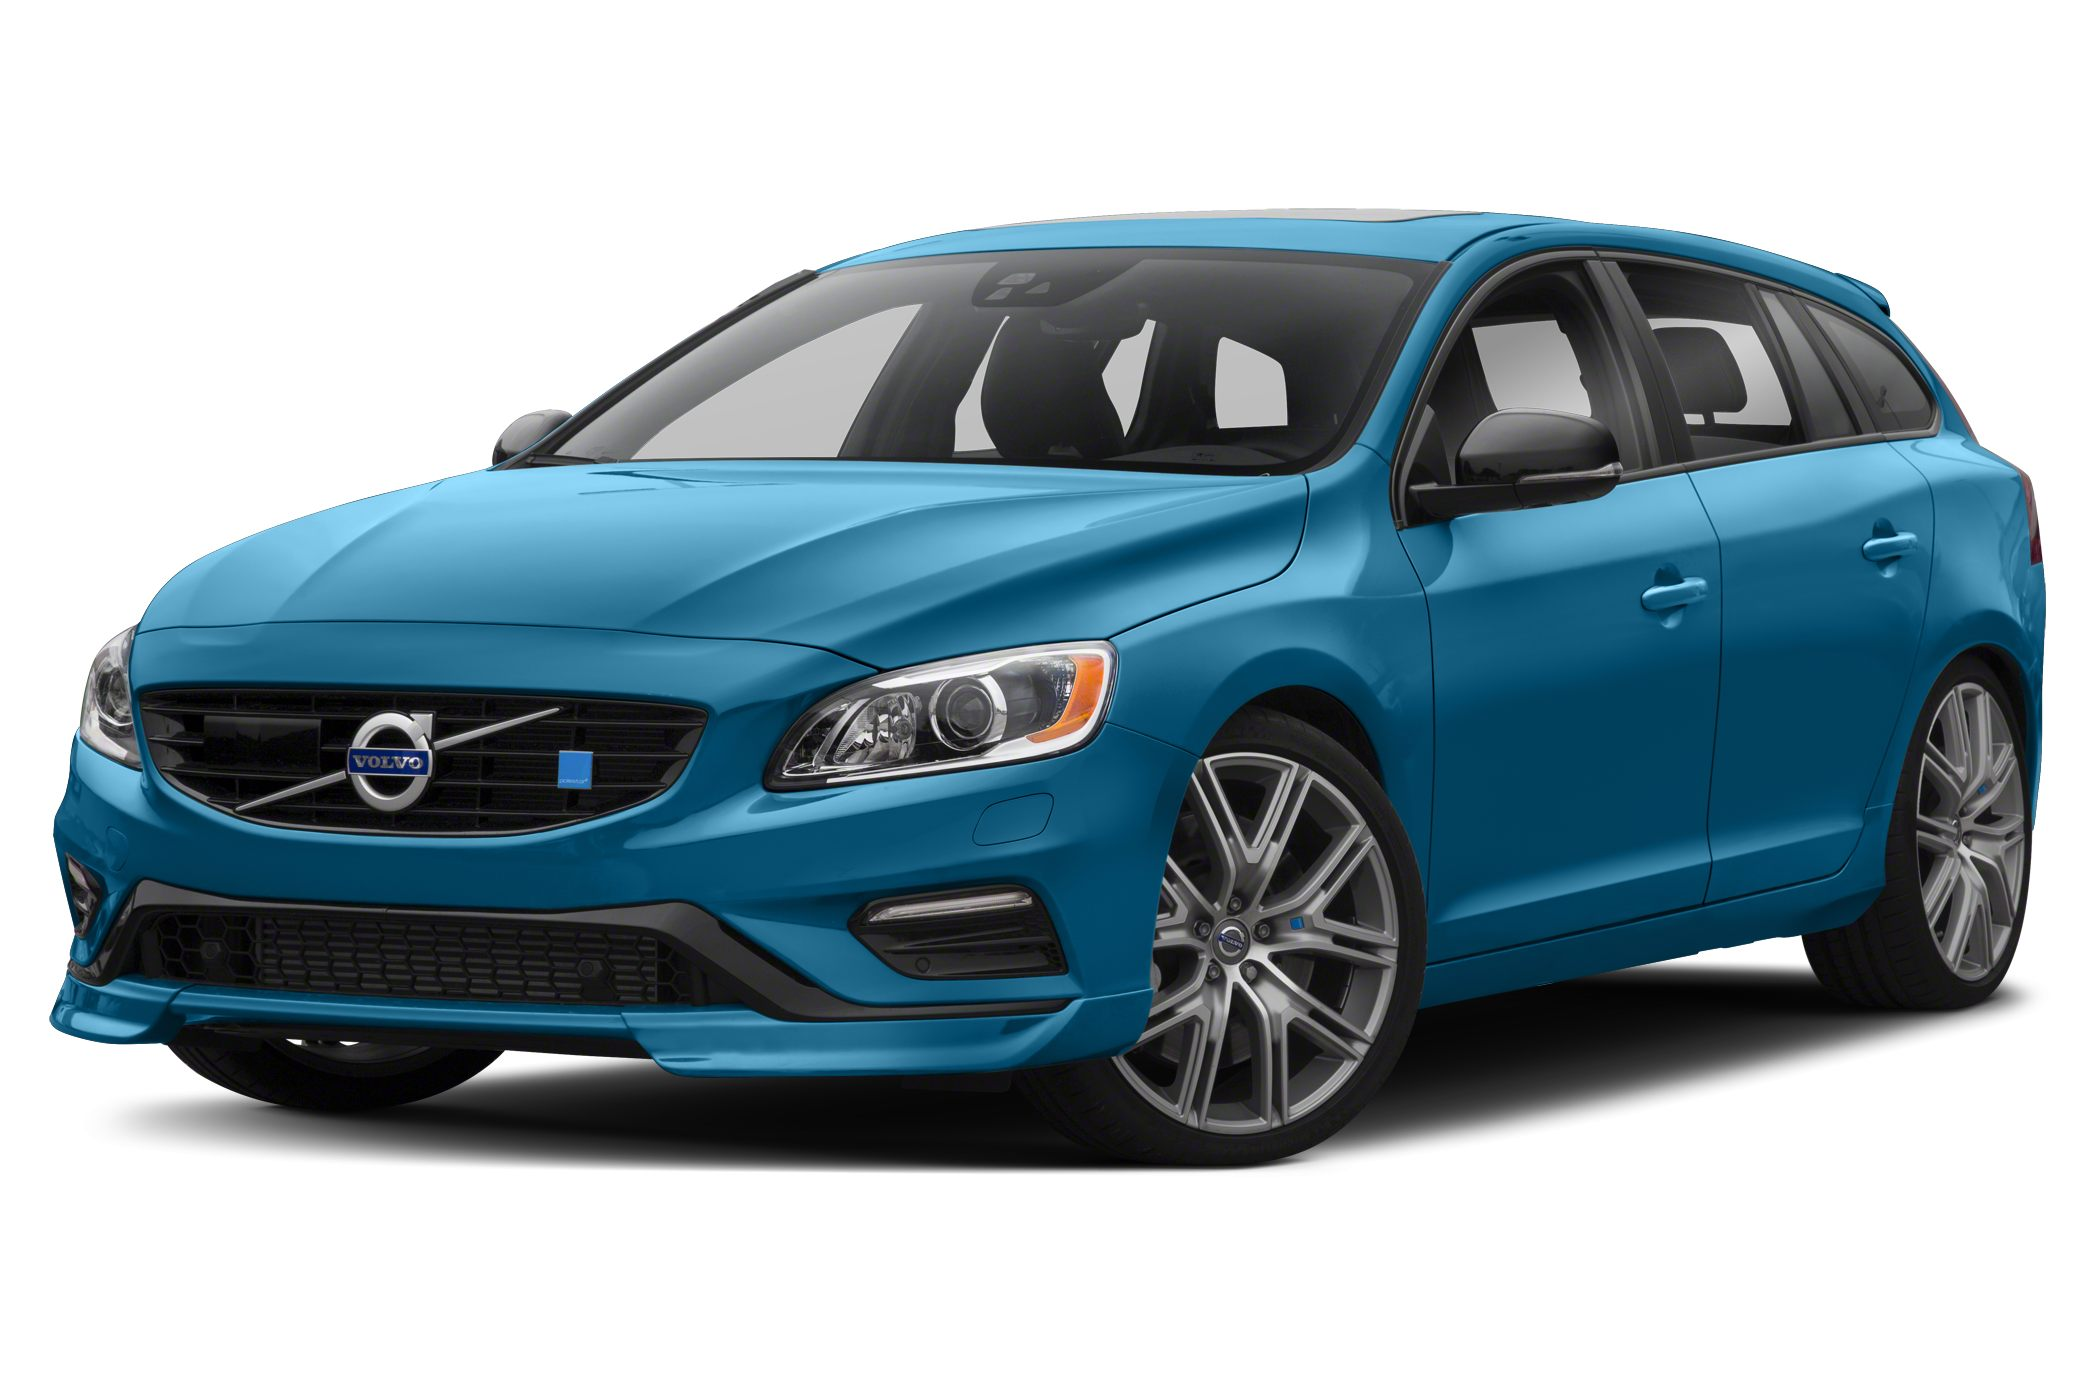 sale offers country and pa wagon sports new finance lease for price doylestown htm volvo deals cross